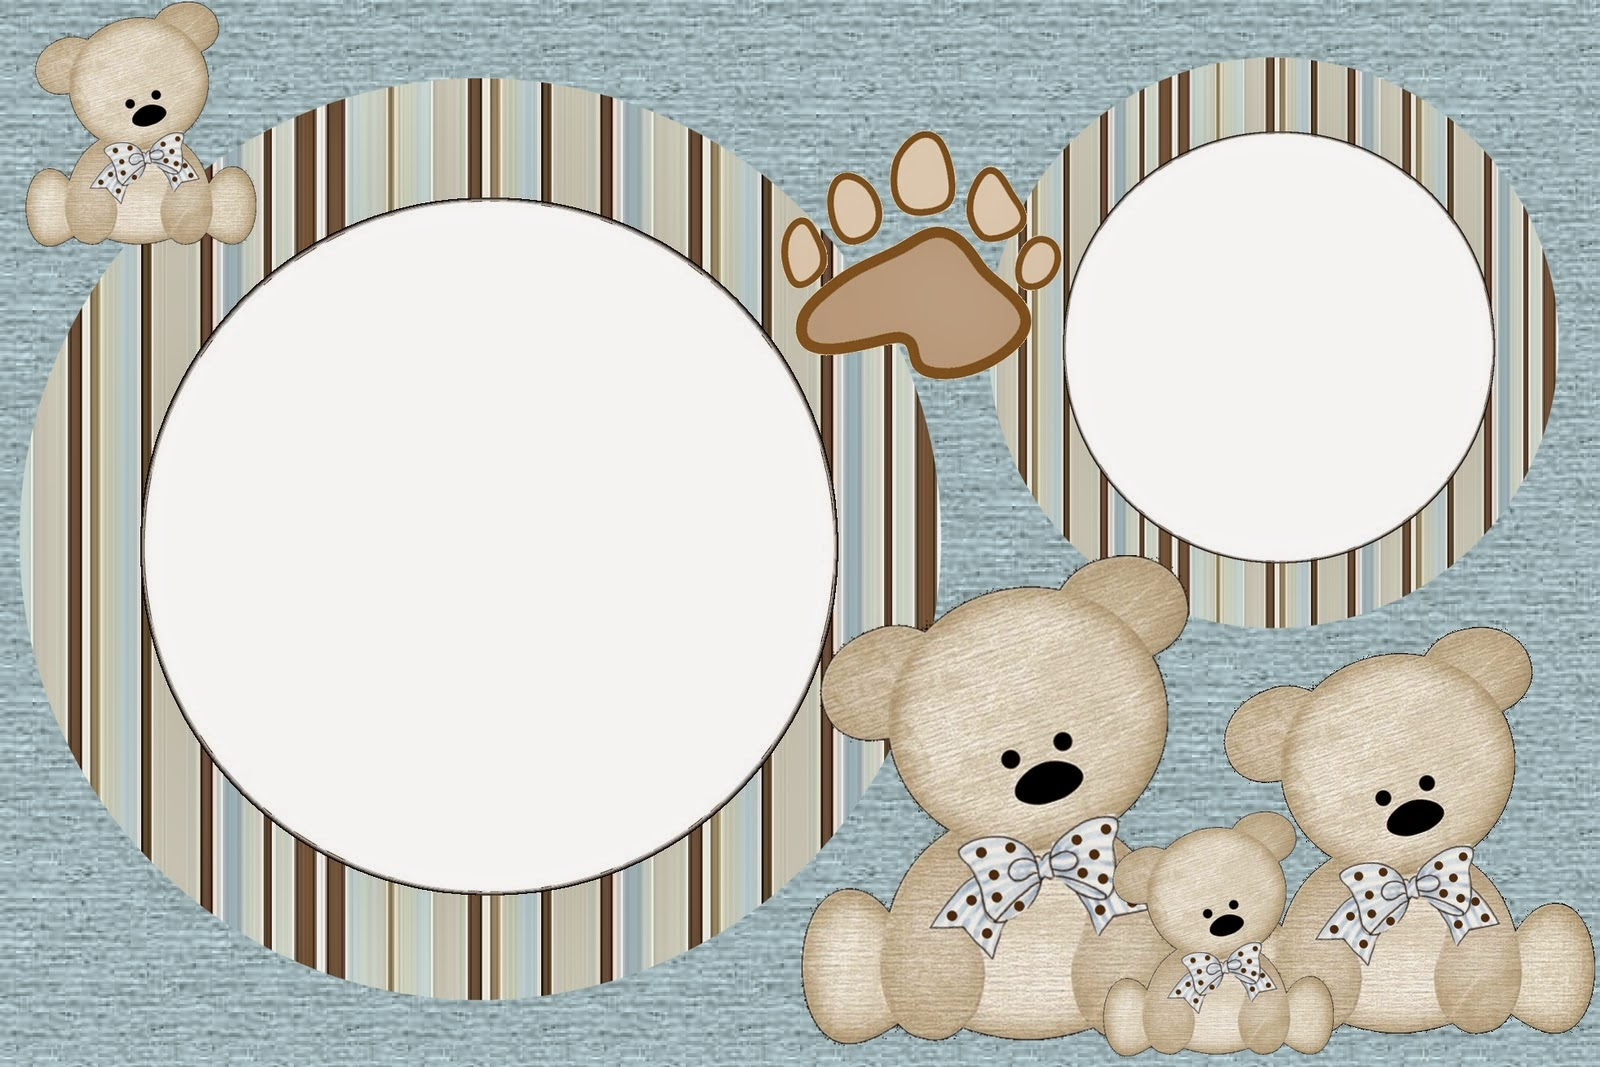 Teddy Bear Family, Free Printable Invitations, Labels or Cards.